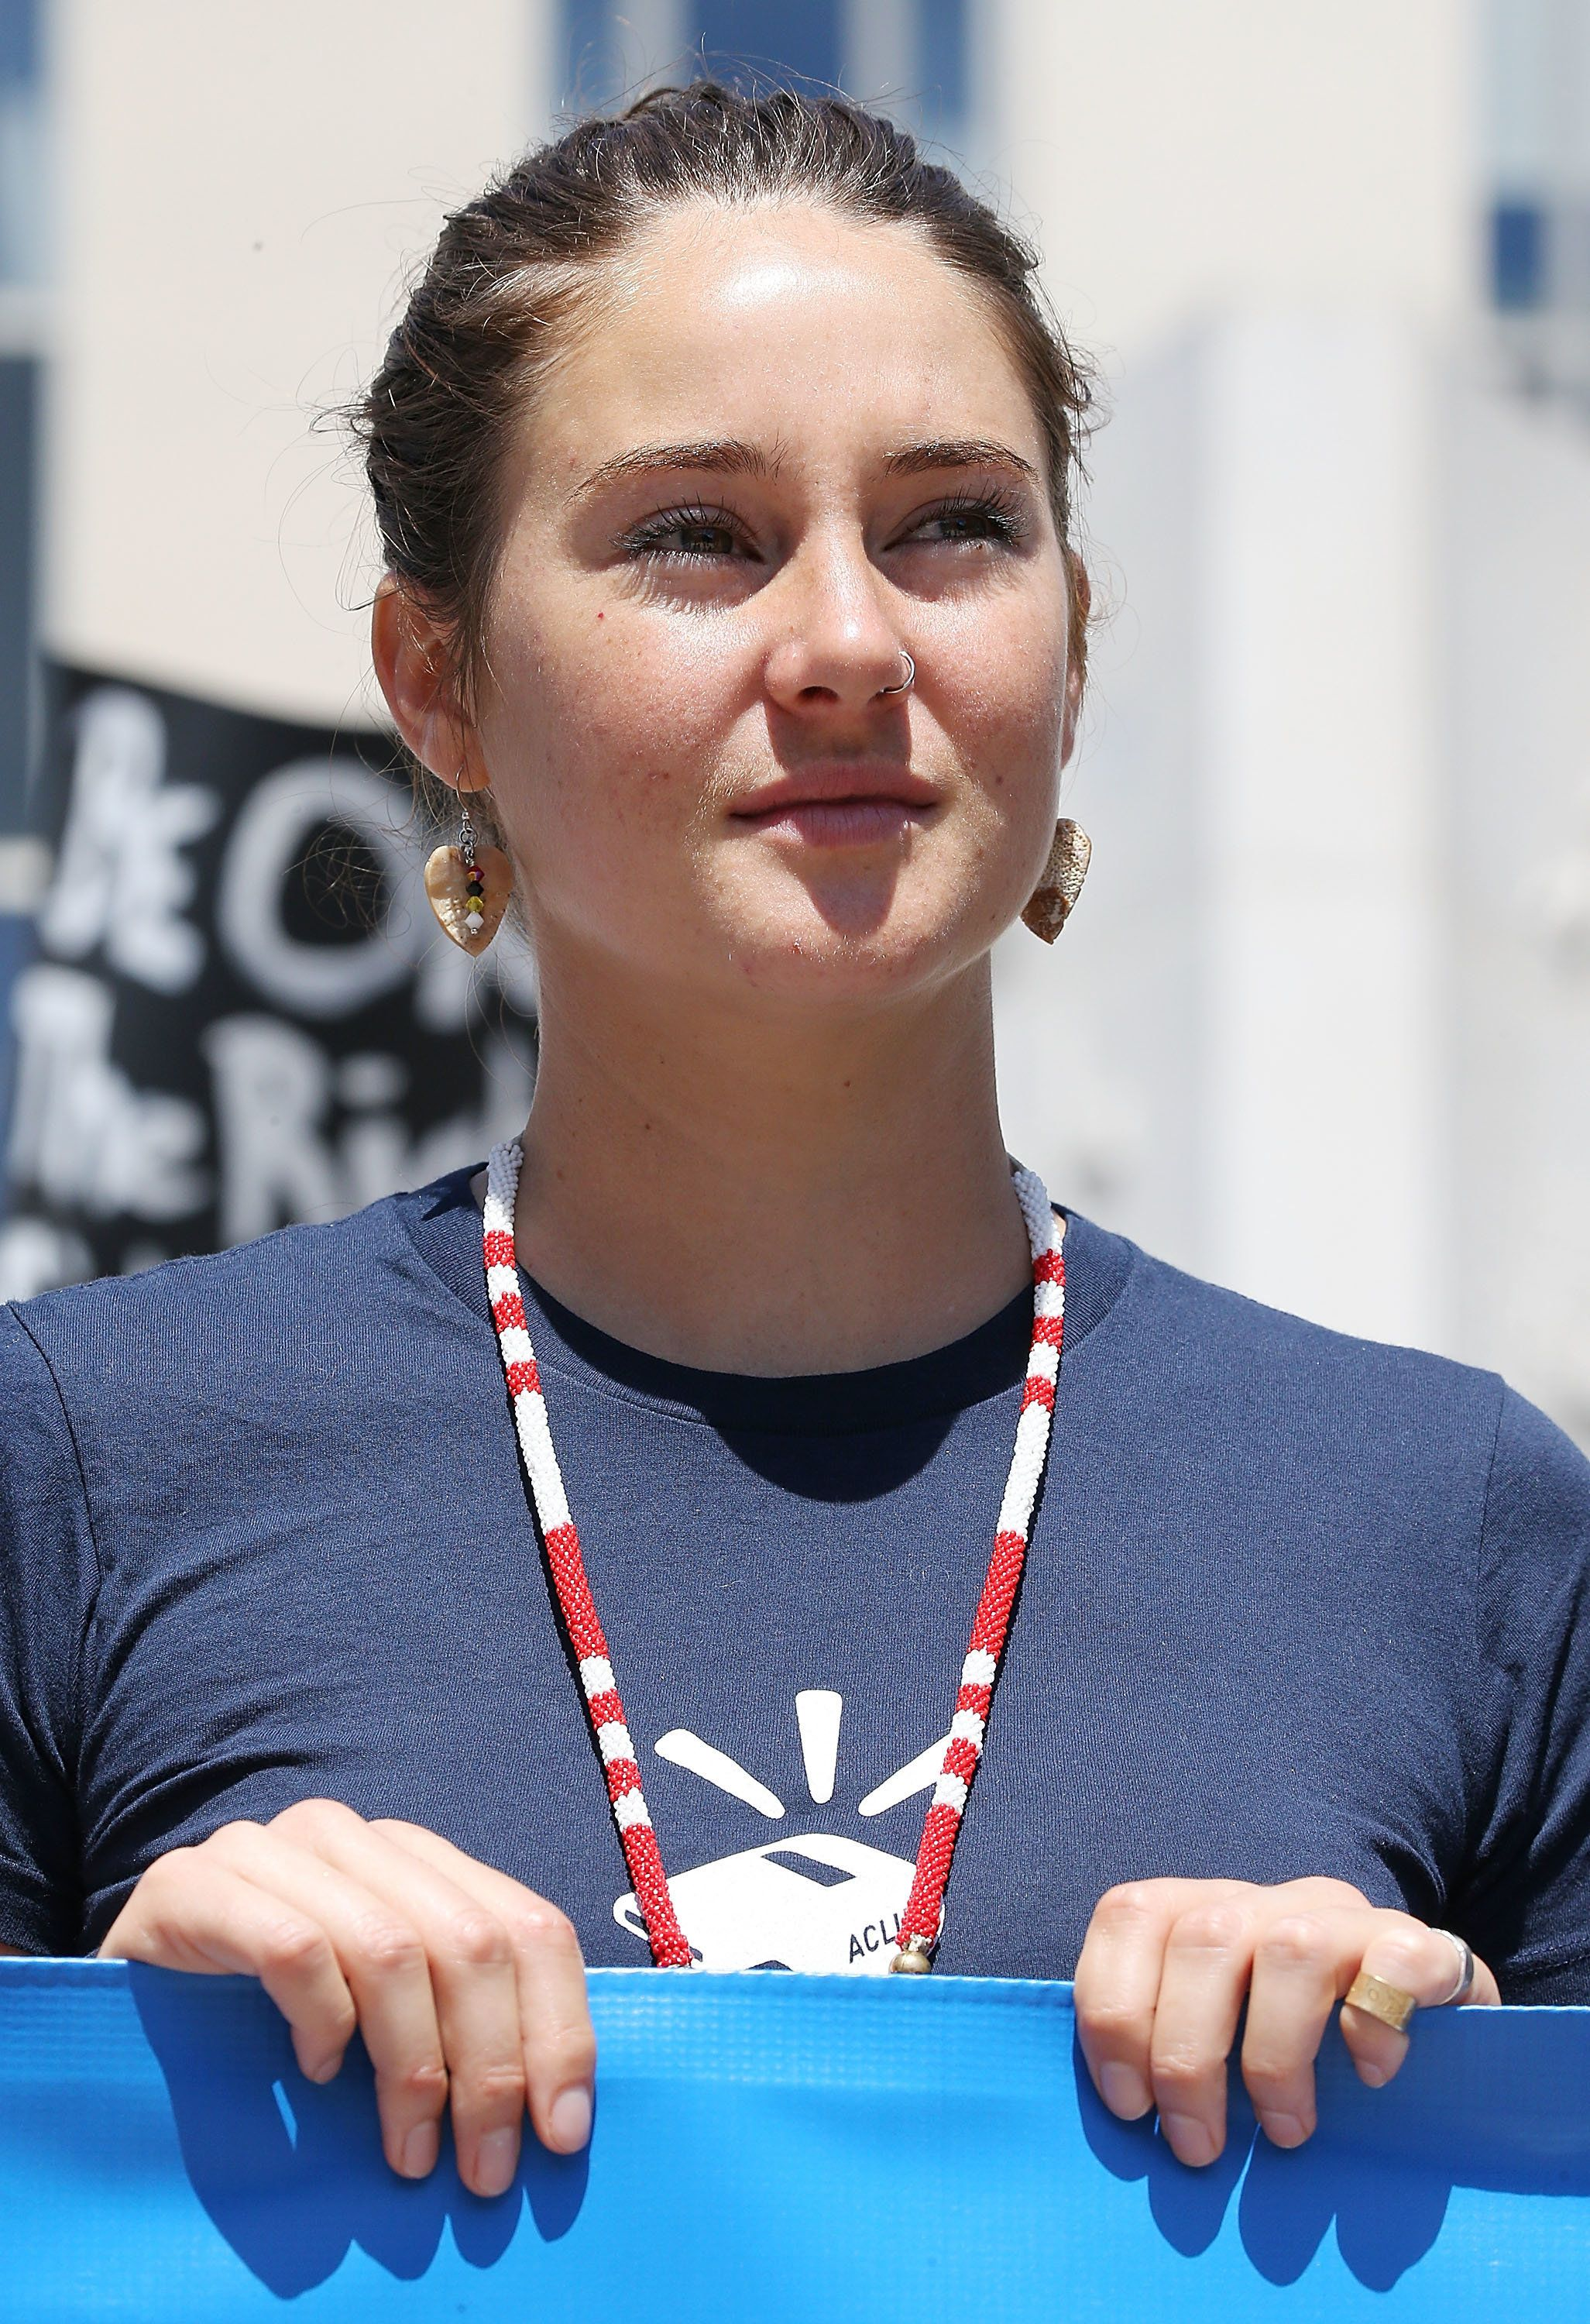 WASHINGTON, DC - AUGUST 24:  Actress Shailene Woodley participates in a rally in support of a lawsuit against The Army Corps of Engineers to protect water and land from the Dakota Access Pipeline on August 24, 2016 outside of the U.S. District Court in Washington, DC. The $3.8 billion pipline, running from Western North Dakota to Illinois, would cut through Standing Rock Sioux Nation sacred lands and water sources.  (Photo by Paul Morigi/WireImage)